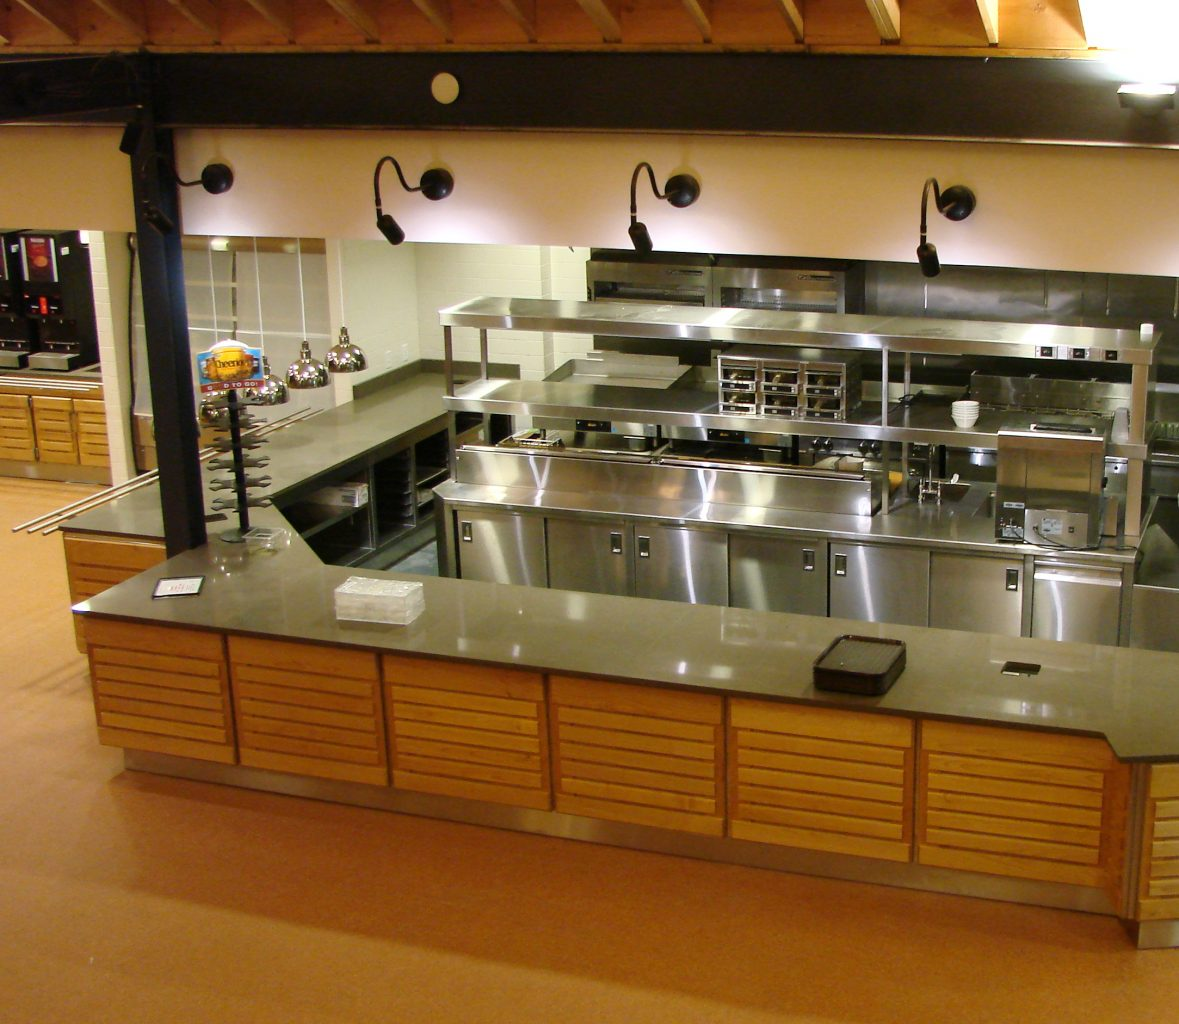 Monroe Kitchen Equipment, INC. | If You Have Any Questions ...